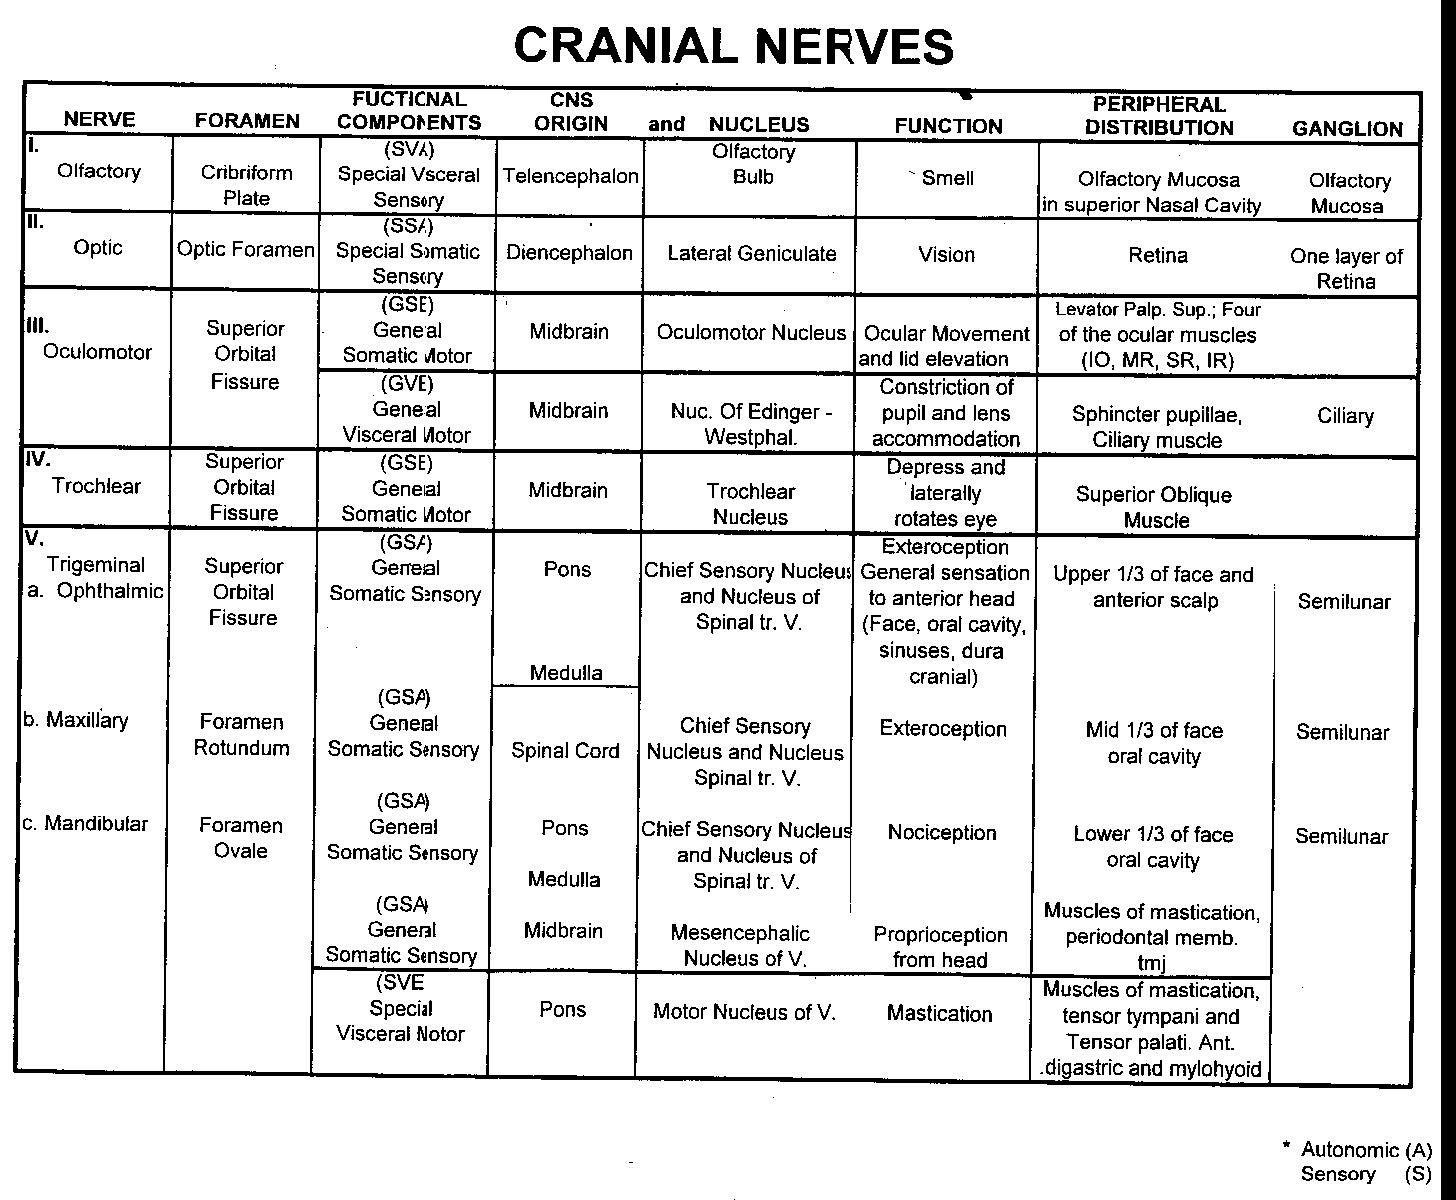 ANAT 2626 Cranial Nerve Detailed Spreadsheet 1